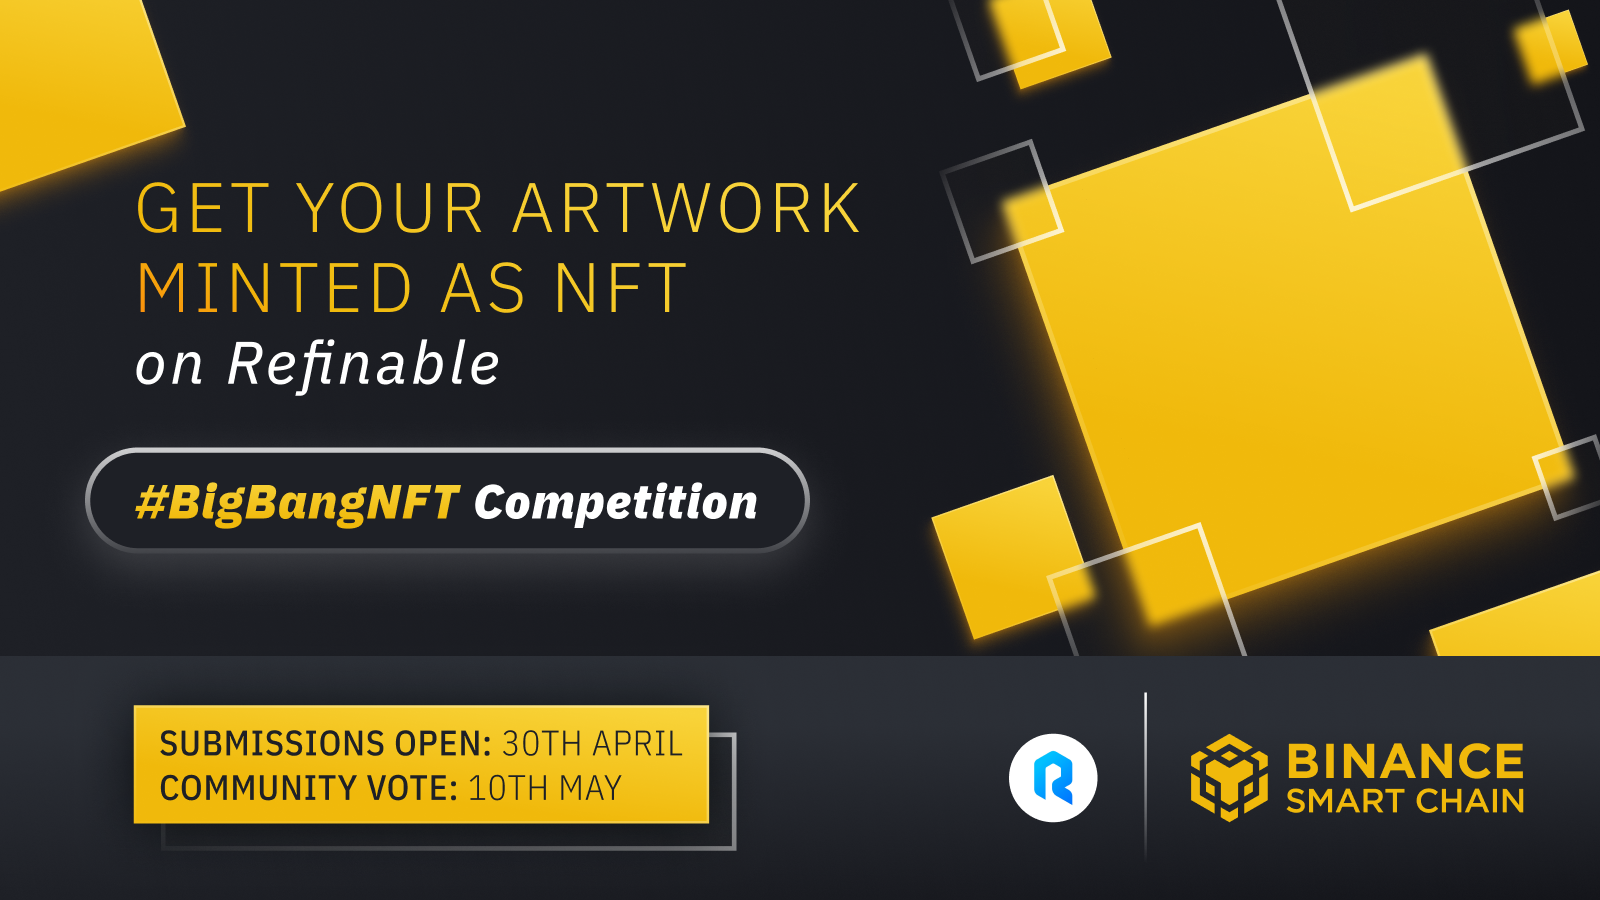 The #BigBangNFT Competition: Get Your Artwork Minted on Refinable and Win Unique NFTs, $FINE, and $BNB!